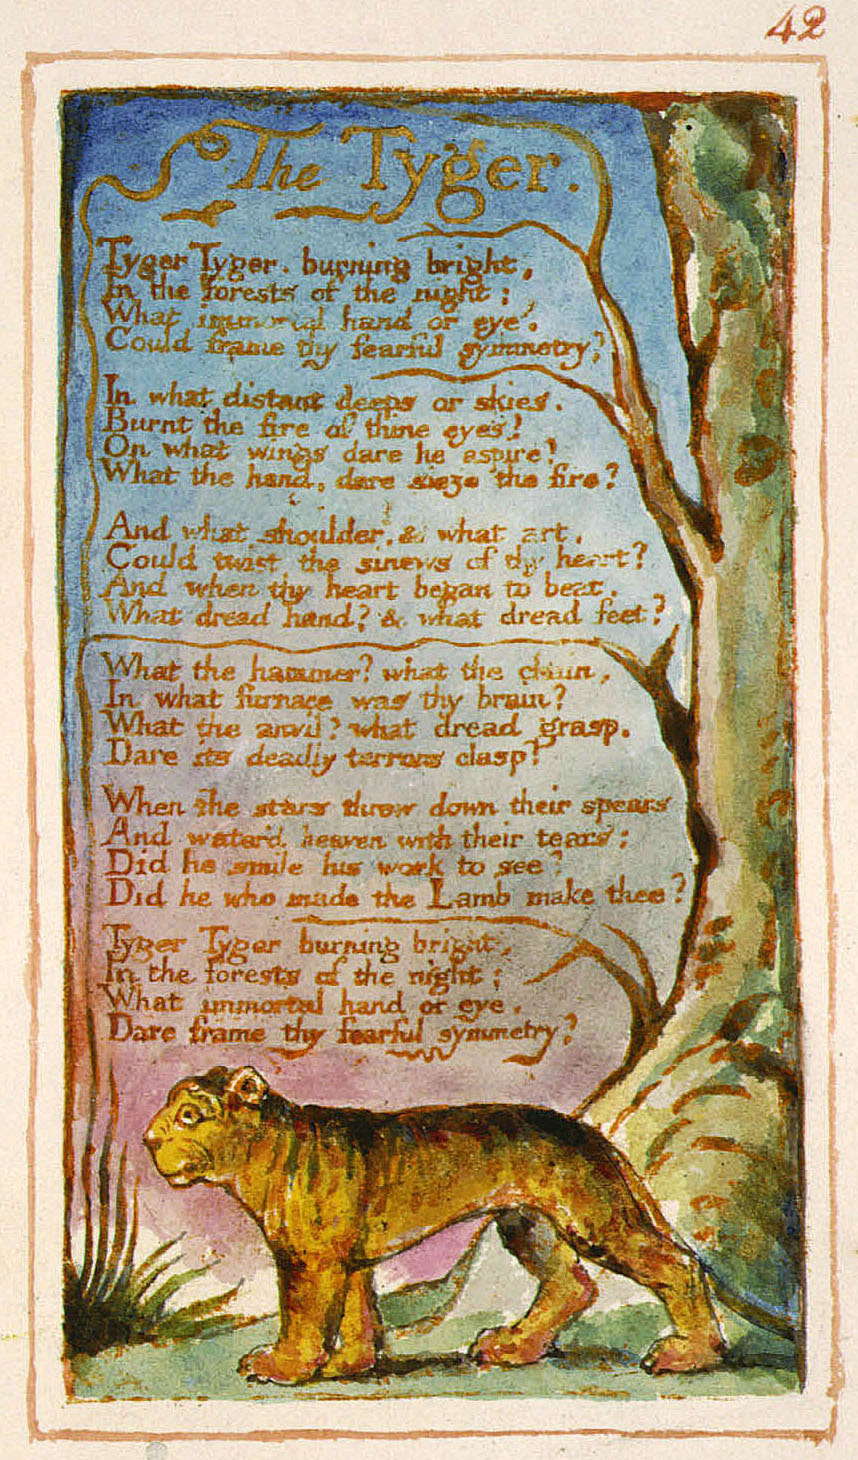 compare and contrast william blake and william wordsworth Looking closely at 'london' by william blake and 'composed upon westminster  bridge' by william wordsworth, compare and contrast the two.